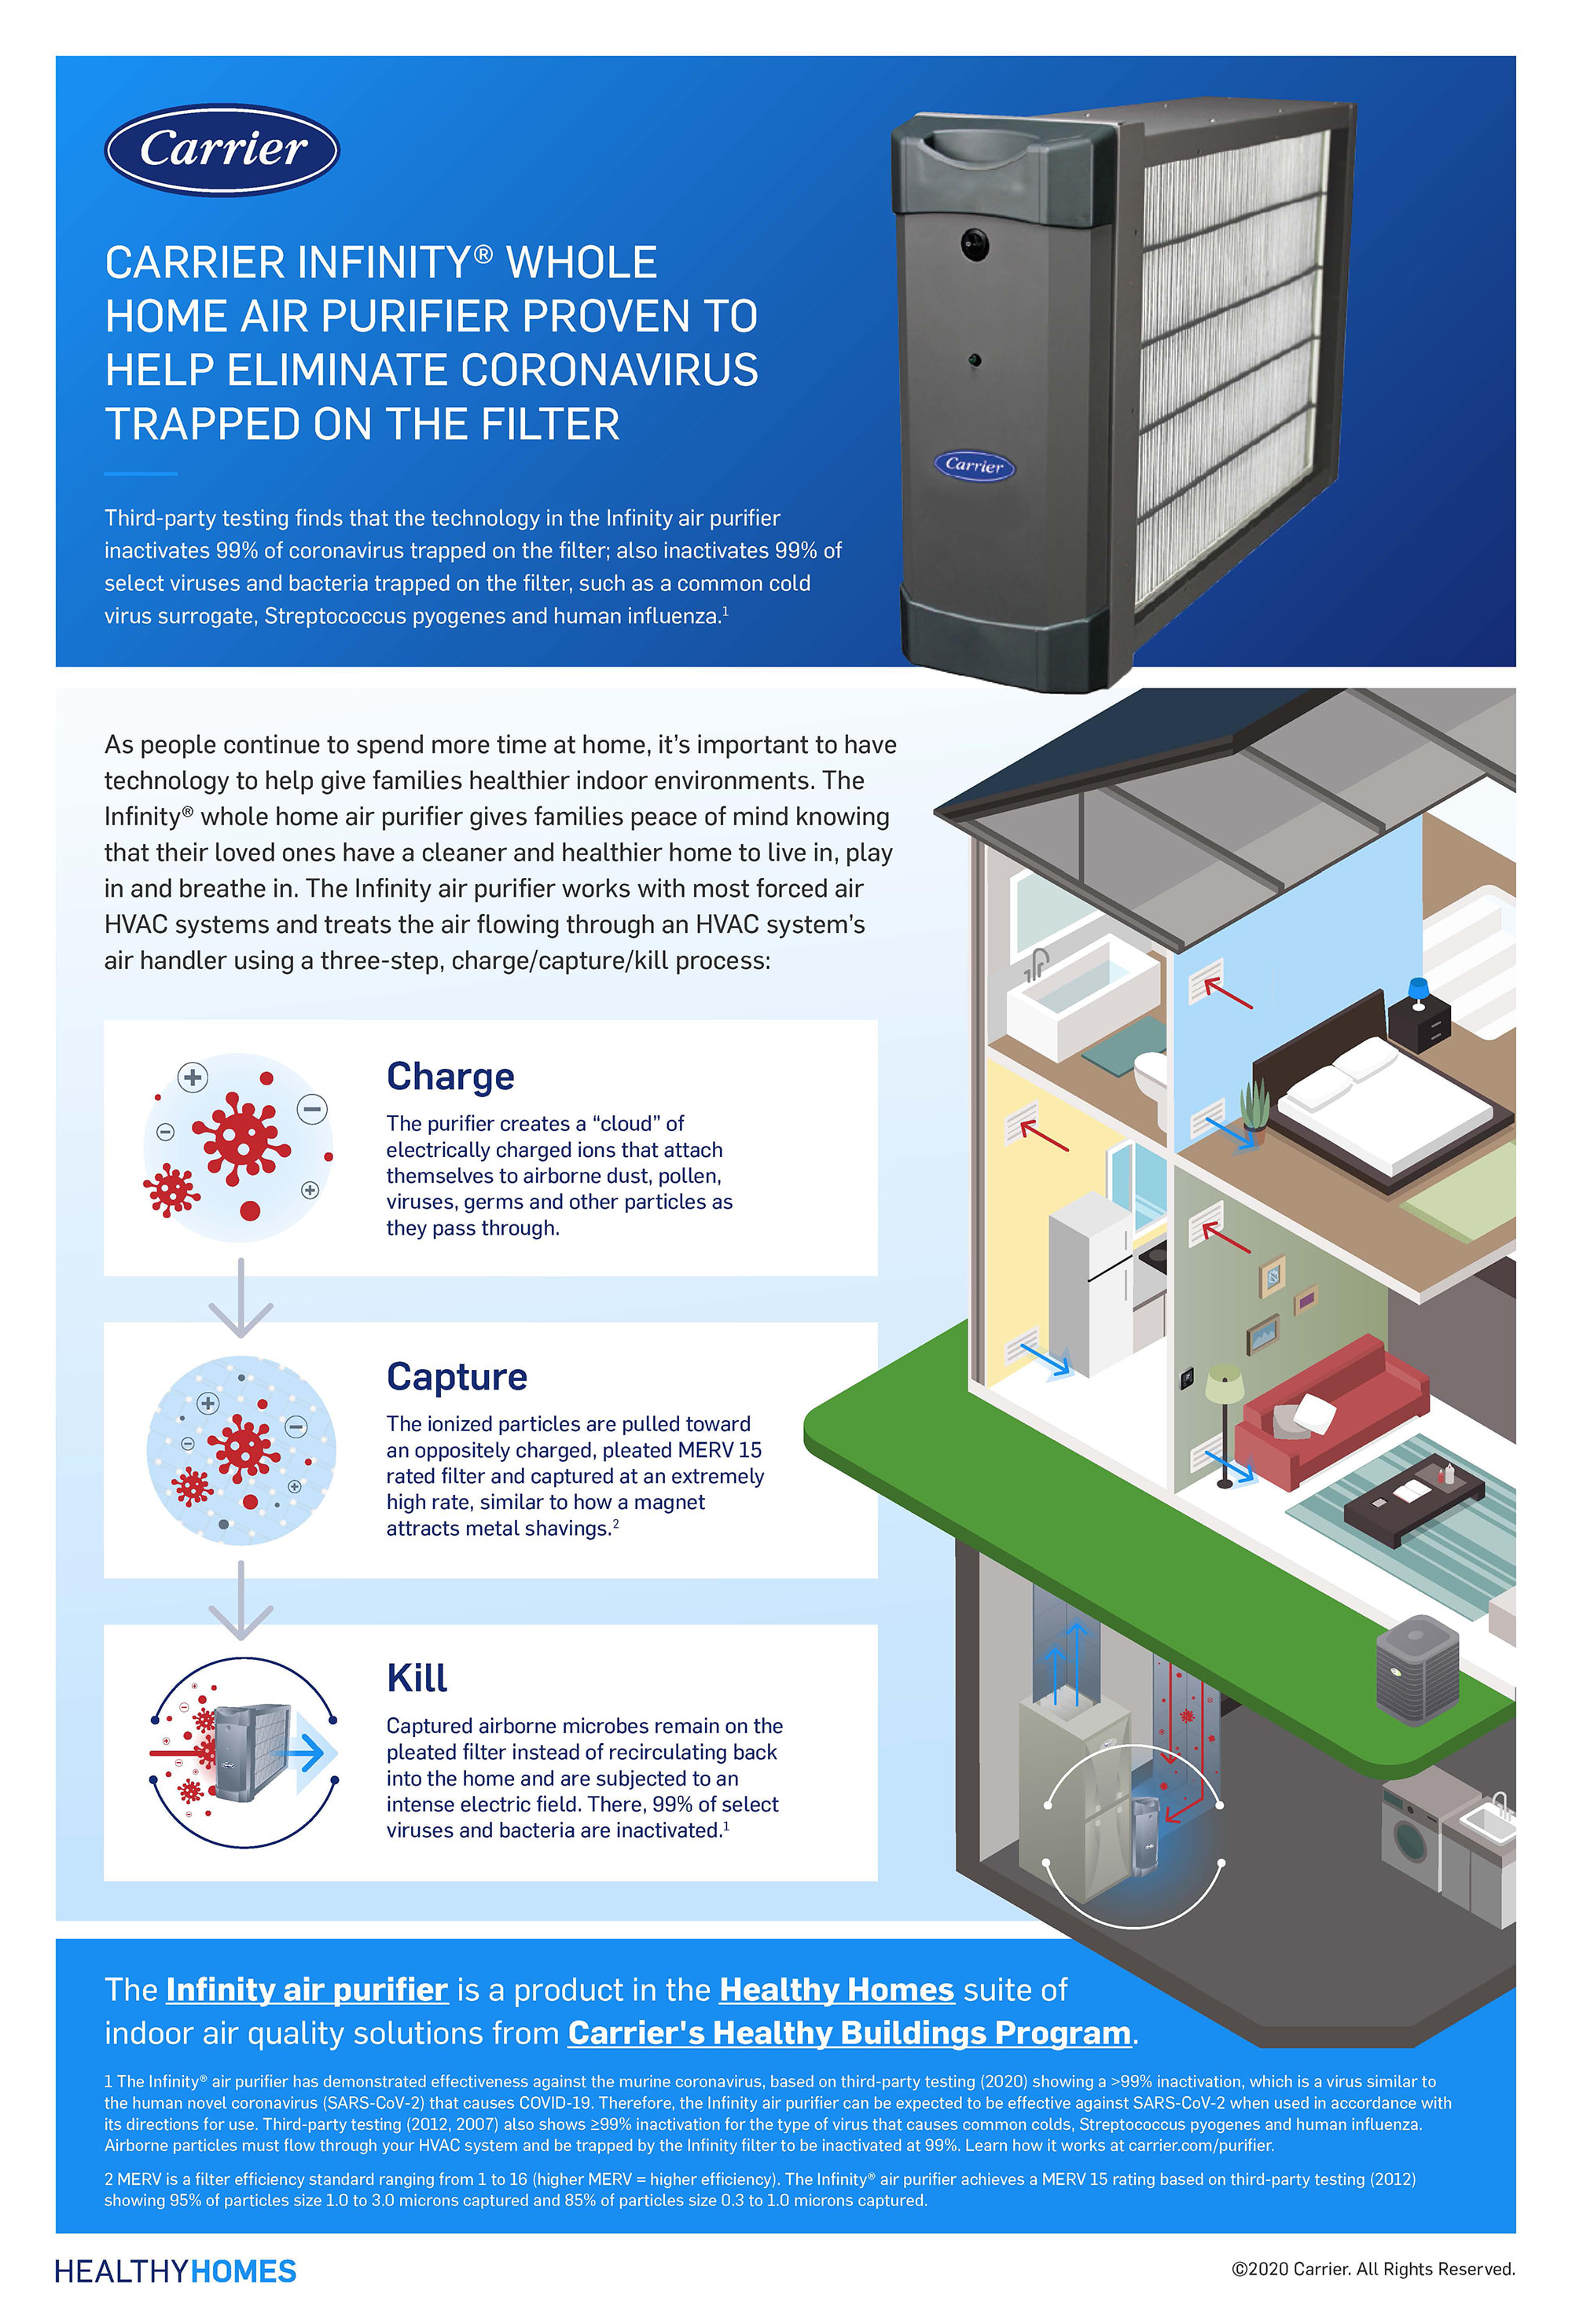 Carrier Infinity Air Purifier Coronavirus Infographic